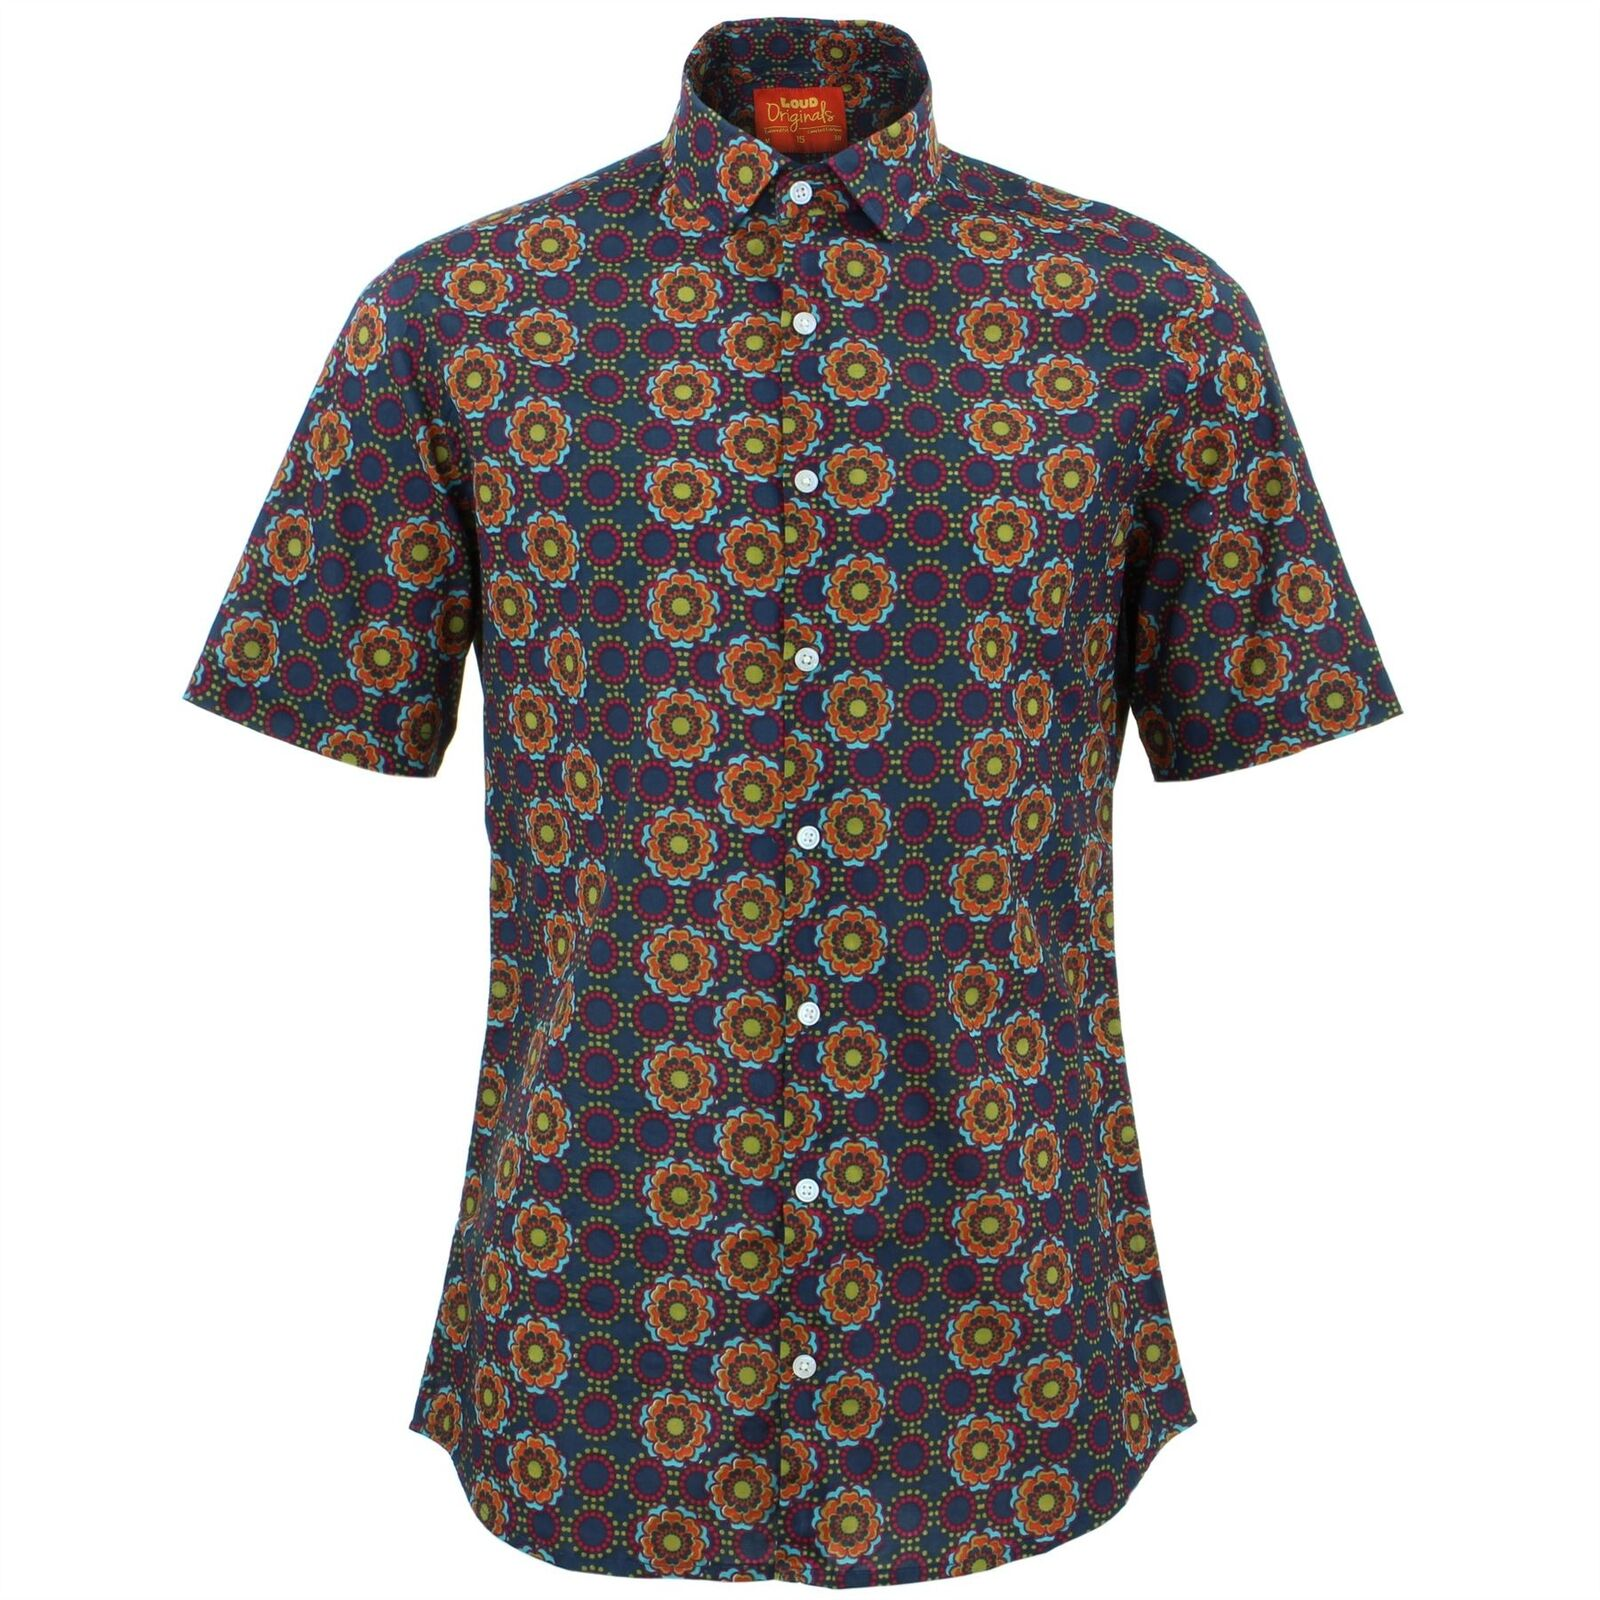 Mens Shirt Loud Originals TAILORED FIT Poppy bluee Retro Psychedelic Fancy